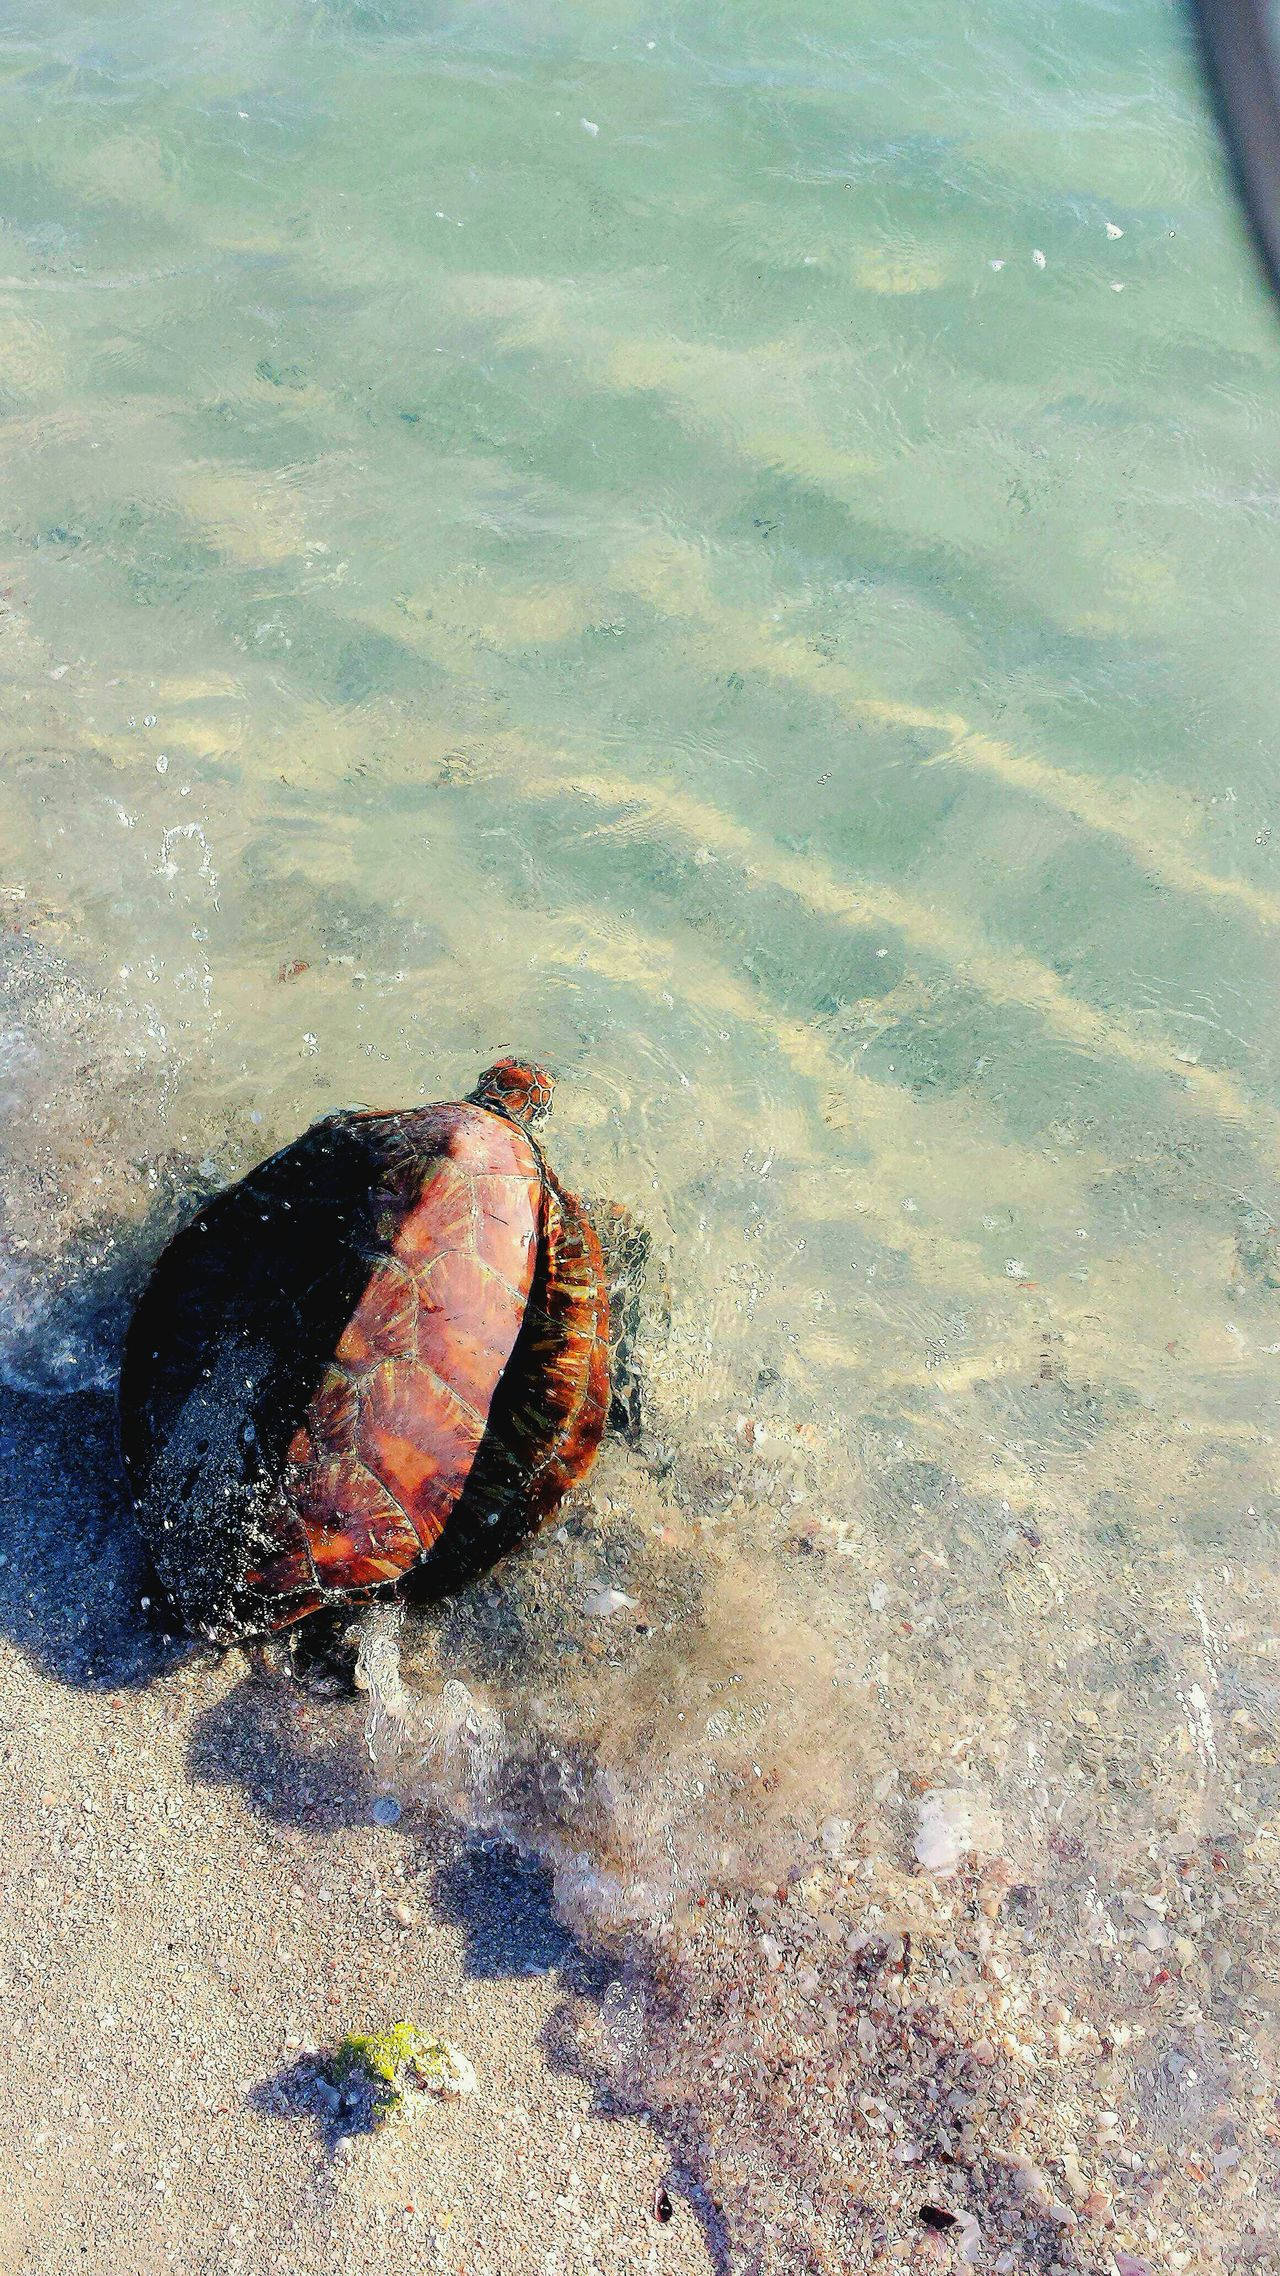 Hawksbill Turtle Turtle 🐢 Check This Out Taking Photos Great Barrier Reef Tropical Far North Queensland Beautiful Nature